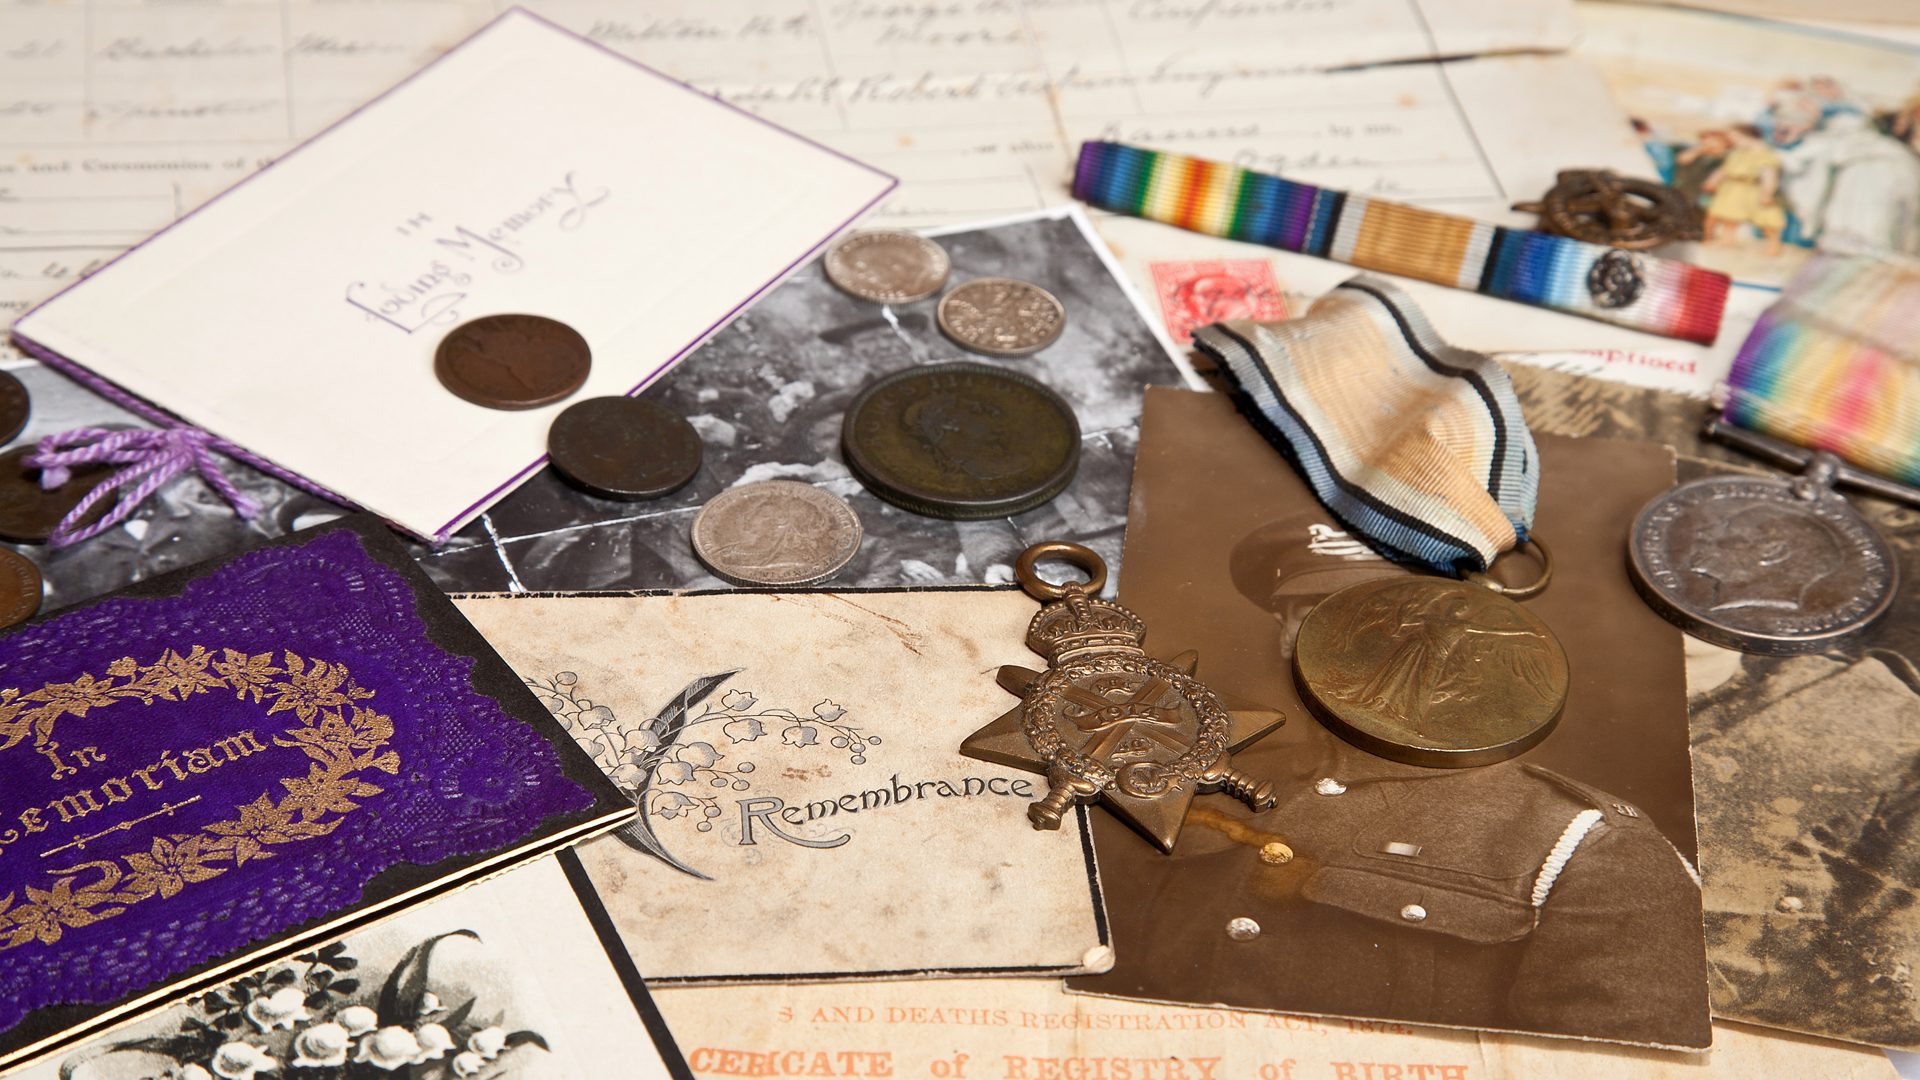 Military medals and documents